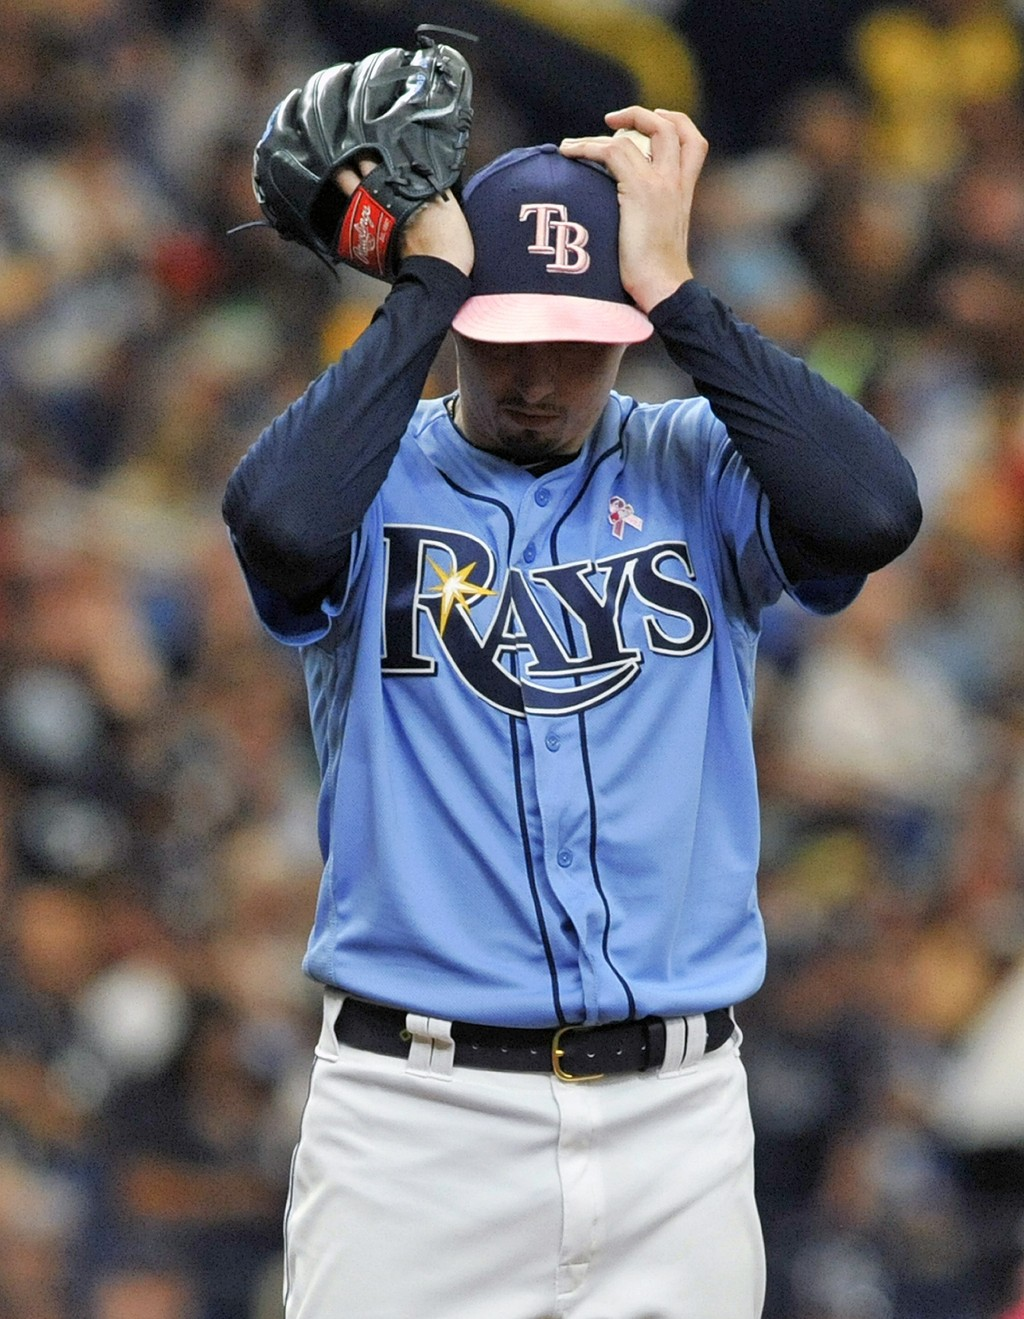 Tampa Bay Rays starter Blake Snell adjusts his cap between pitches during the fifth inning of a baseball game against the New York Yankees, Sunday, Ma